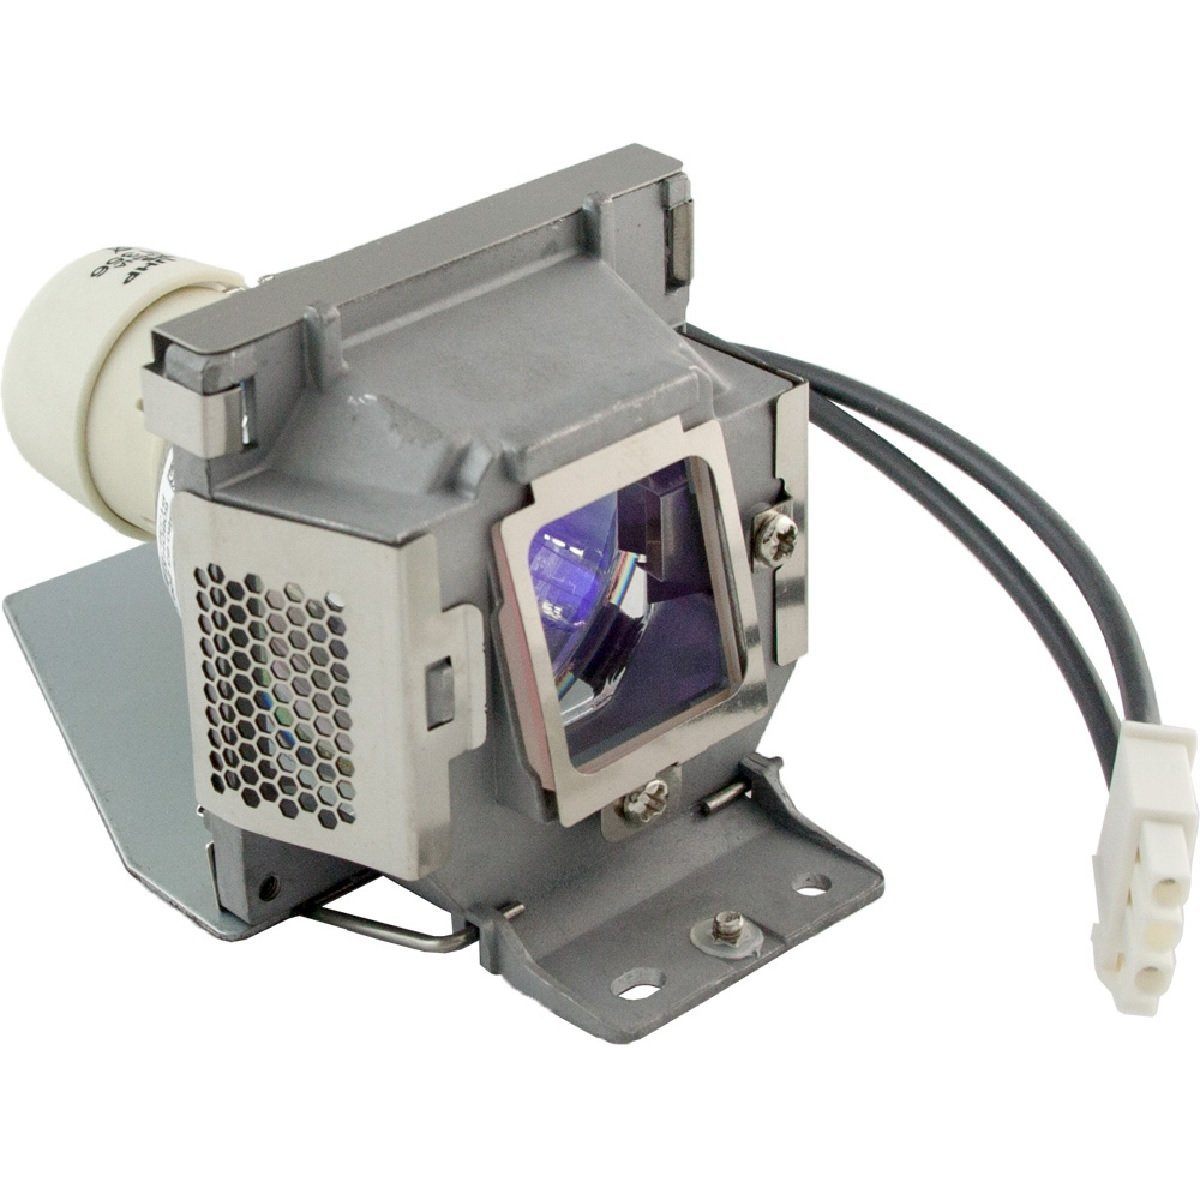 EC.J9000.001 Replacement Projector lamp with housing  for ACER X1130 / X1130K / X1130P / X1230 / X1230PS / X1237 Projectors